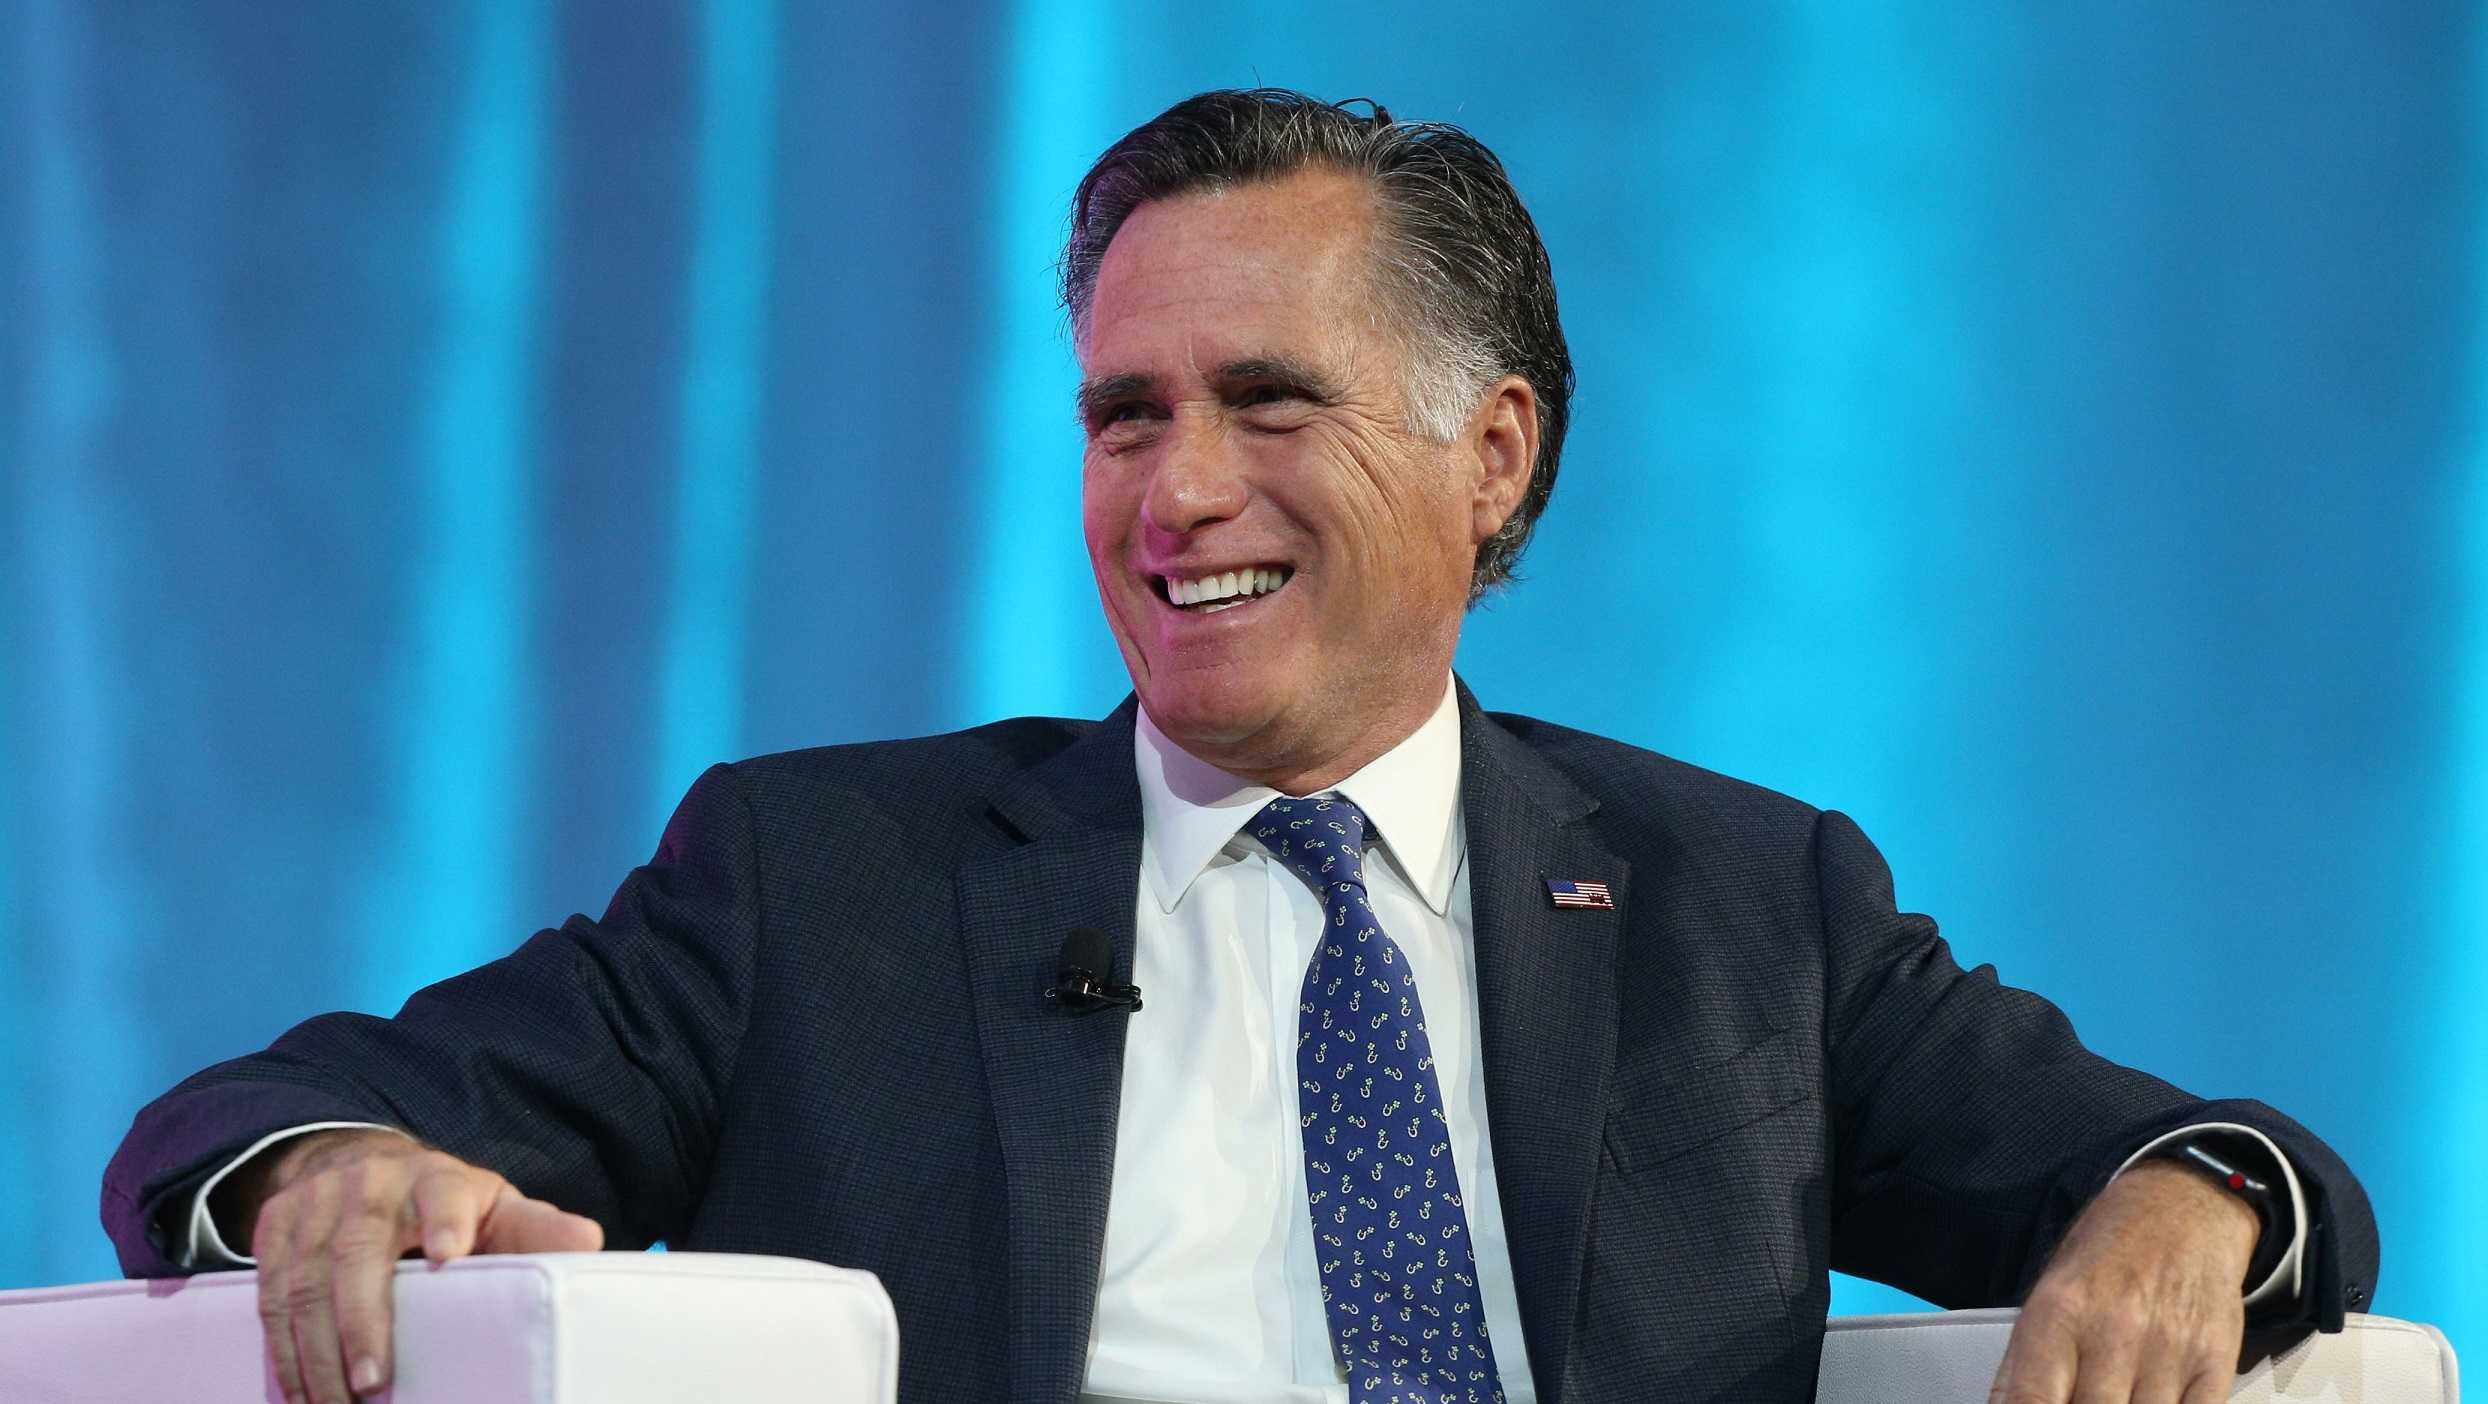 Mitt Romney at the Silicon Slopes Tech Conference on January 19, 2018 in Salt Lake City, Utah.